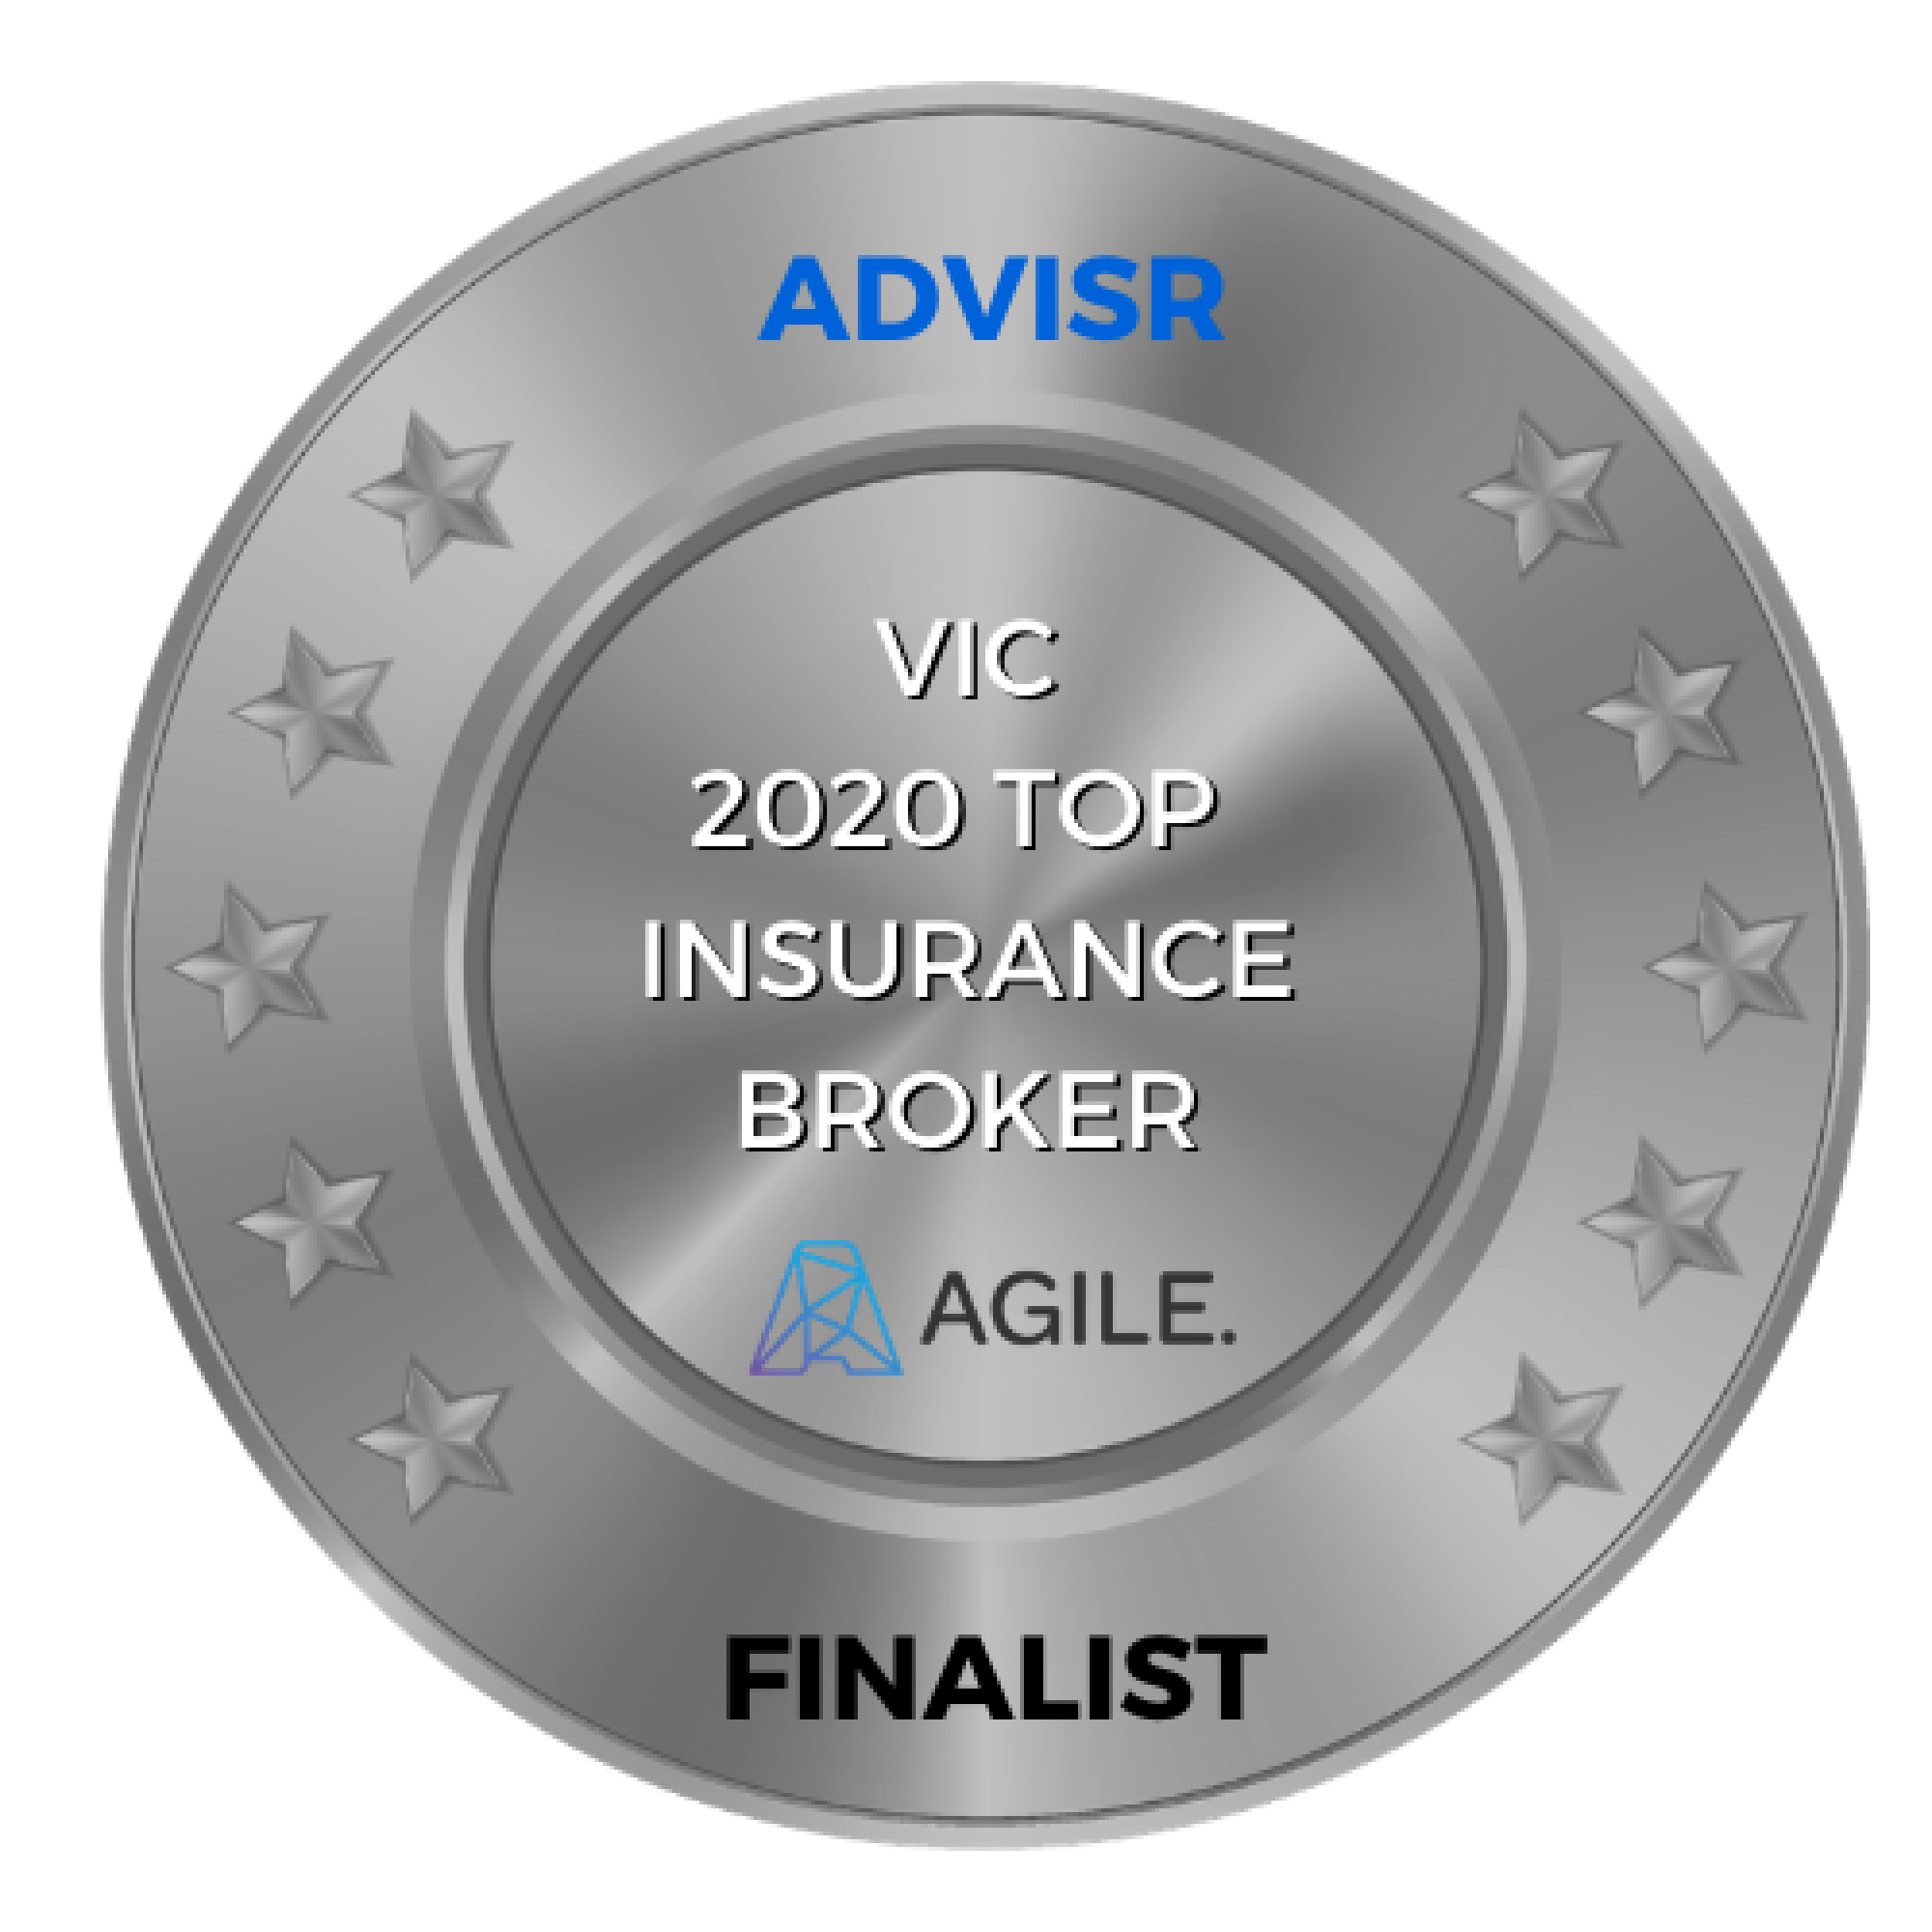 Advisr Insurance Broker Awards 2020 Finalist | Victoria Top Insurance Broker